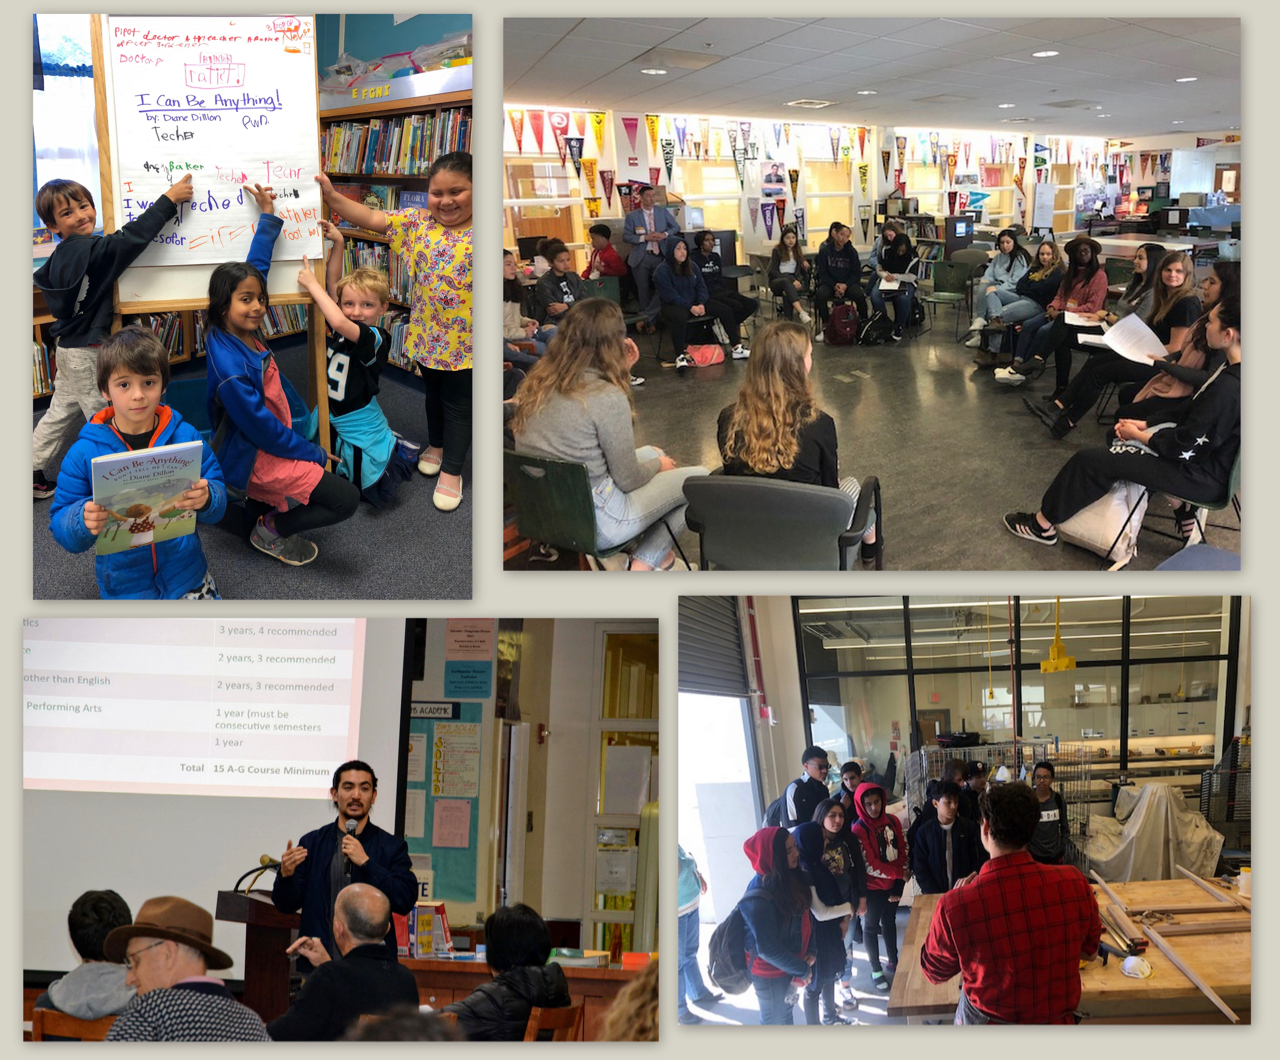 Collage of photos from the College and Career Awareness Week